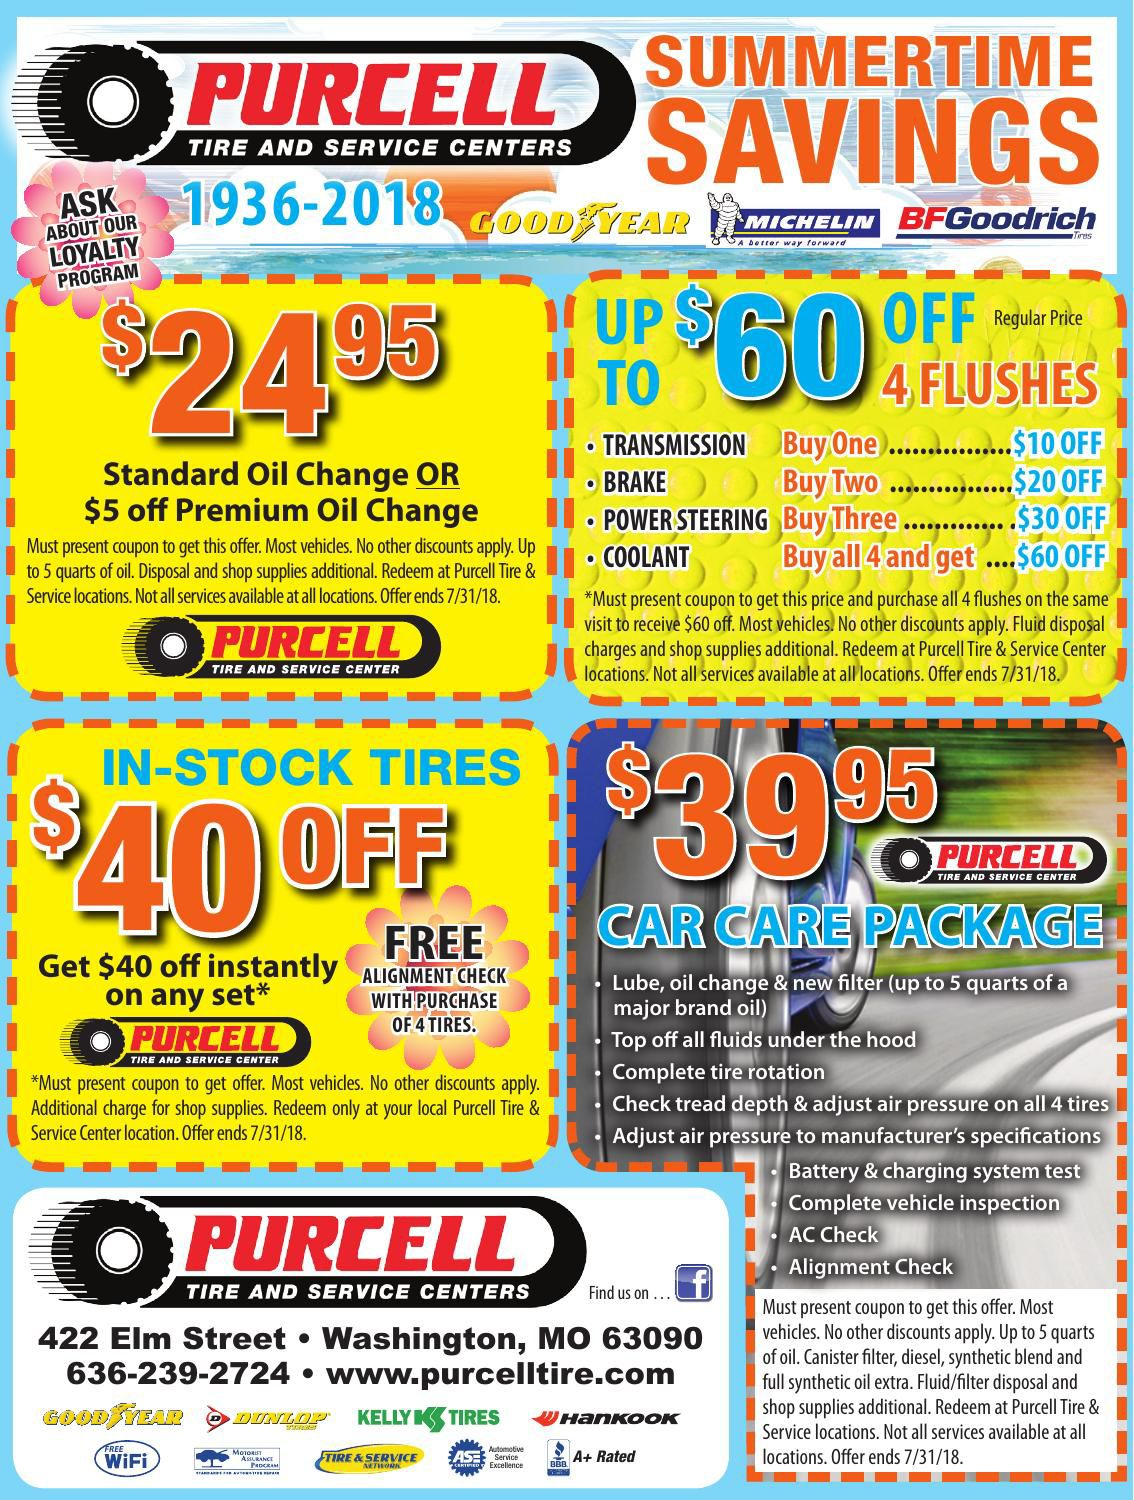 Purcell Tire & Rubber